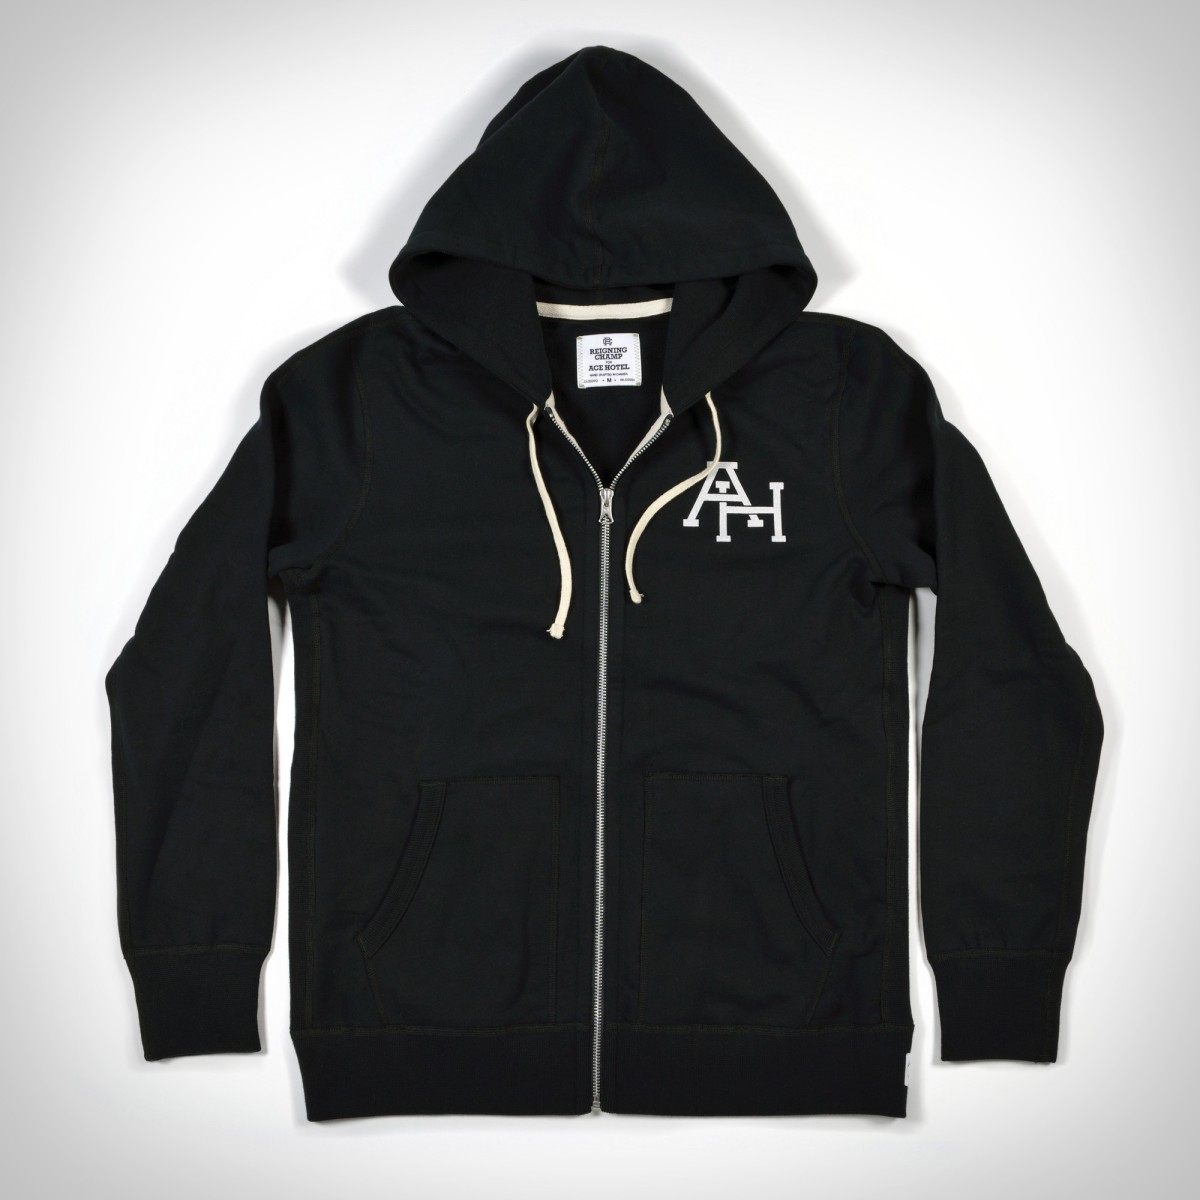 Ace33215_RC hood black 1-lpr.jpg